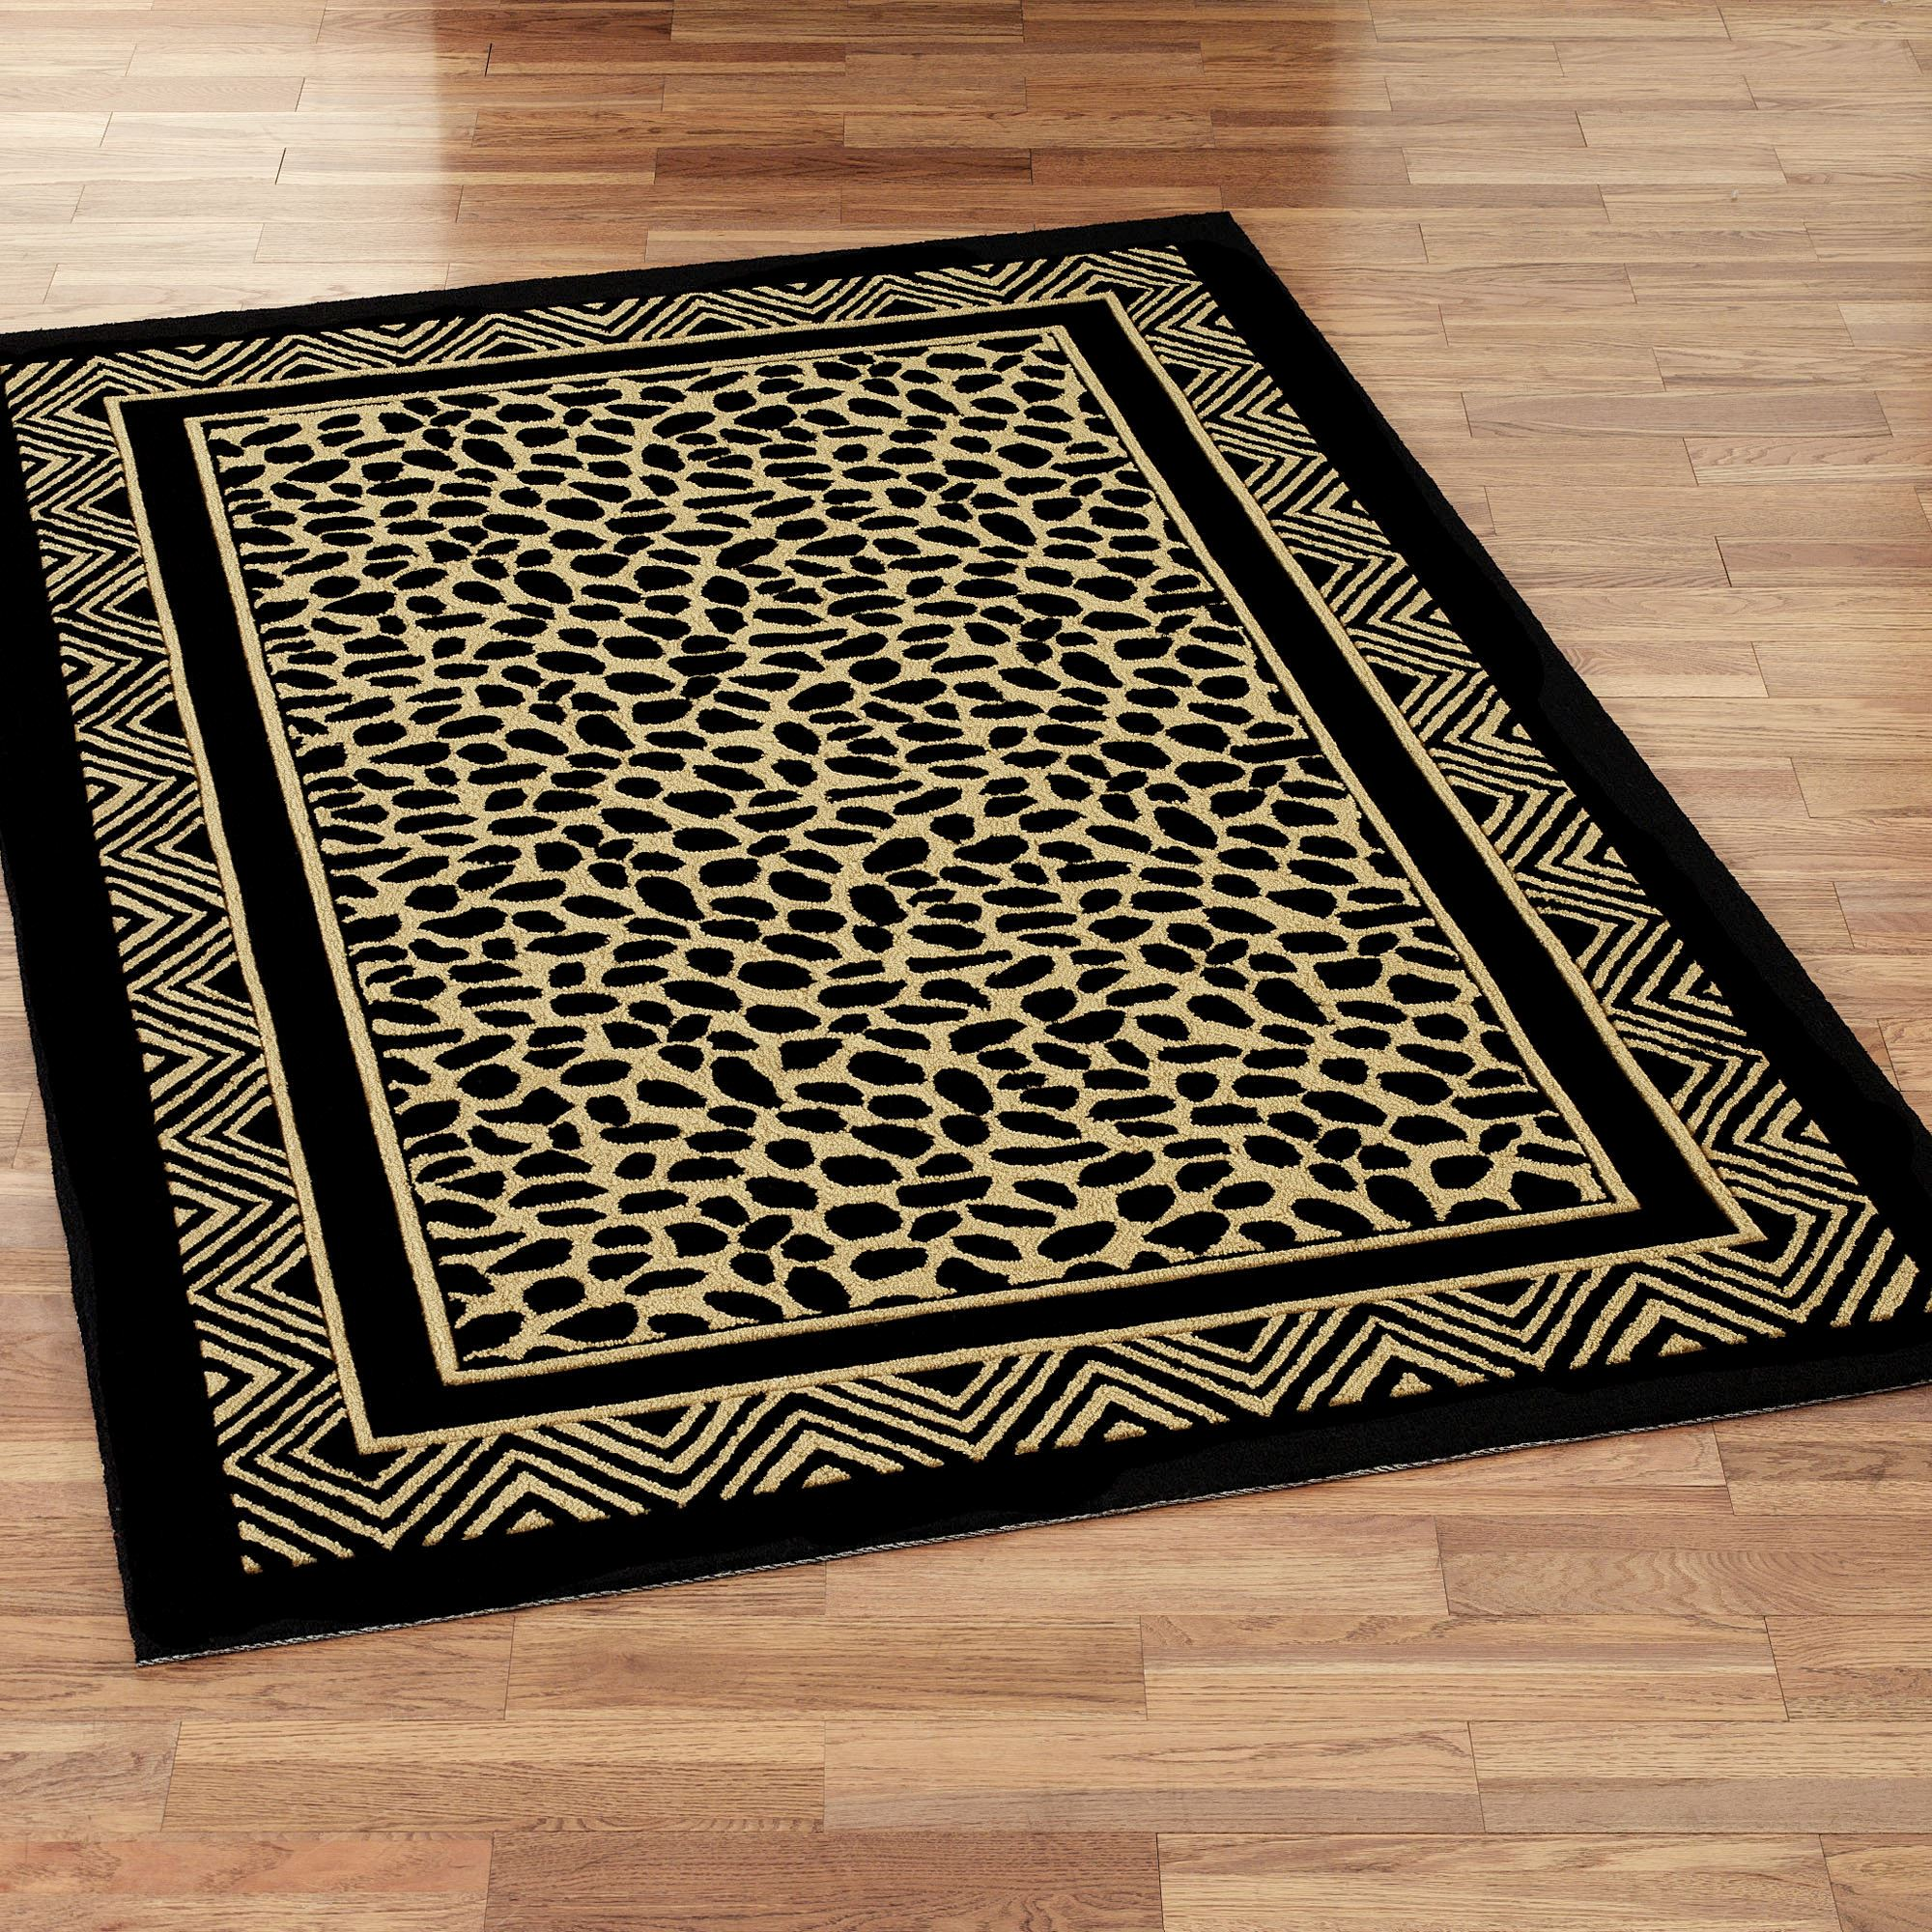 Dog Themed Outdoor Rugs: Wild Leopard Print Hooked Area Rugs